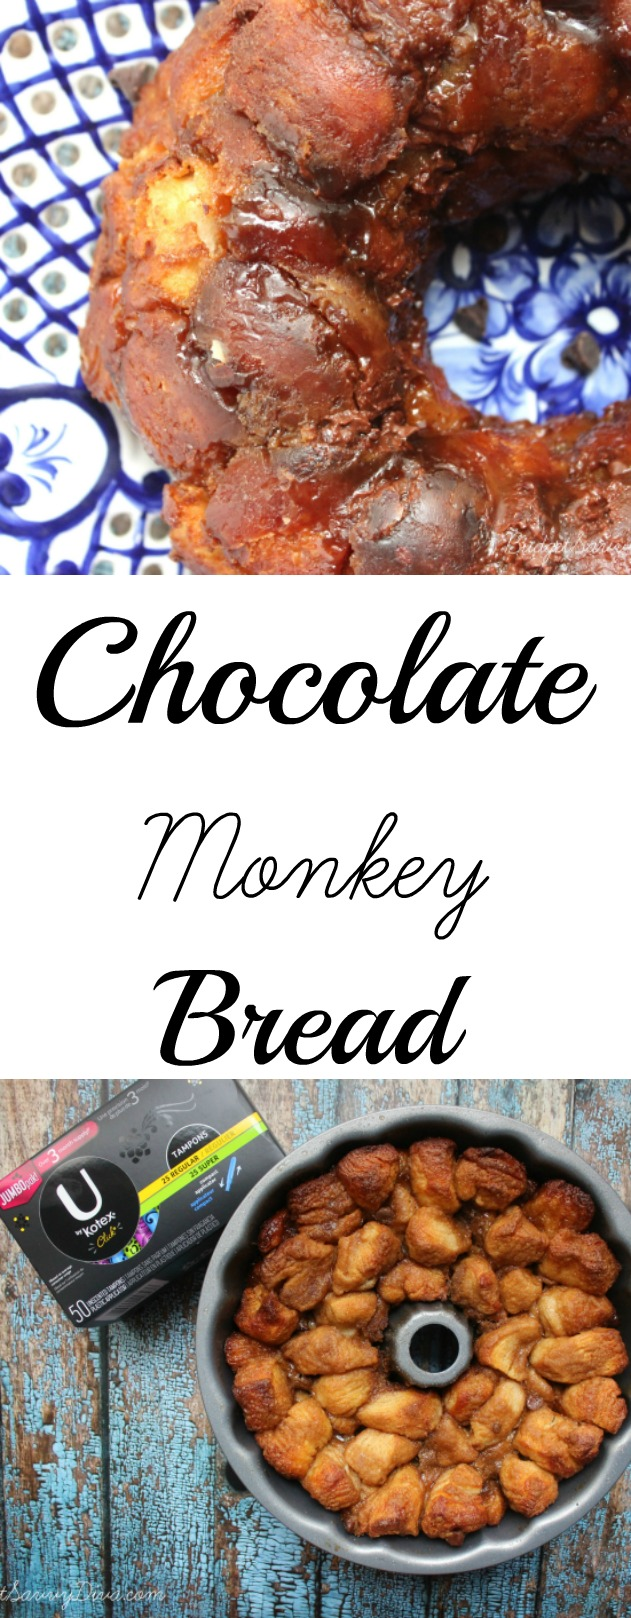 Chocolate Monkey Bread Recipe | Budget Savvy Diva